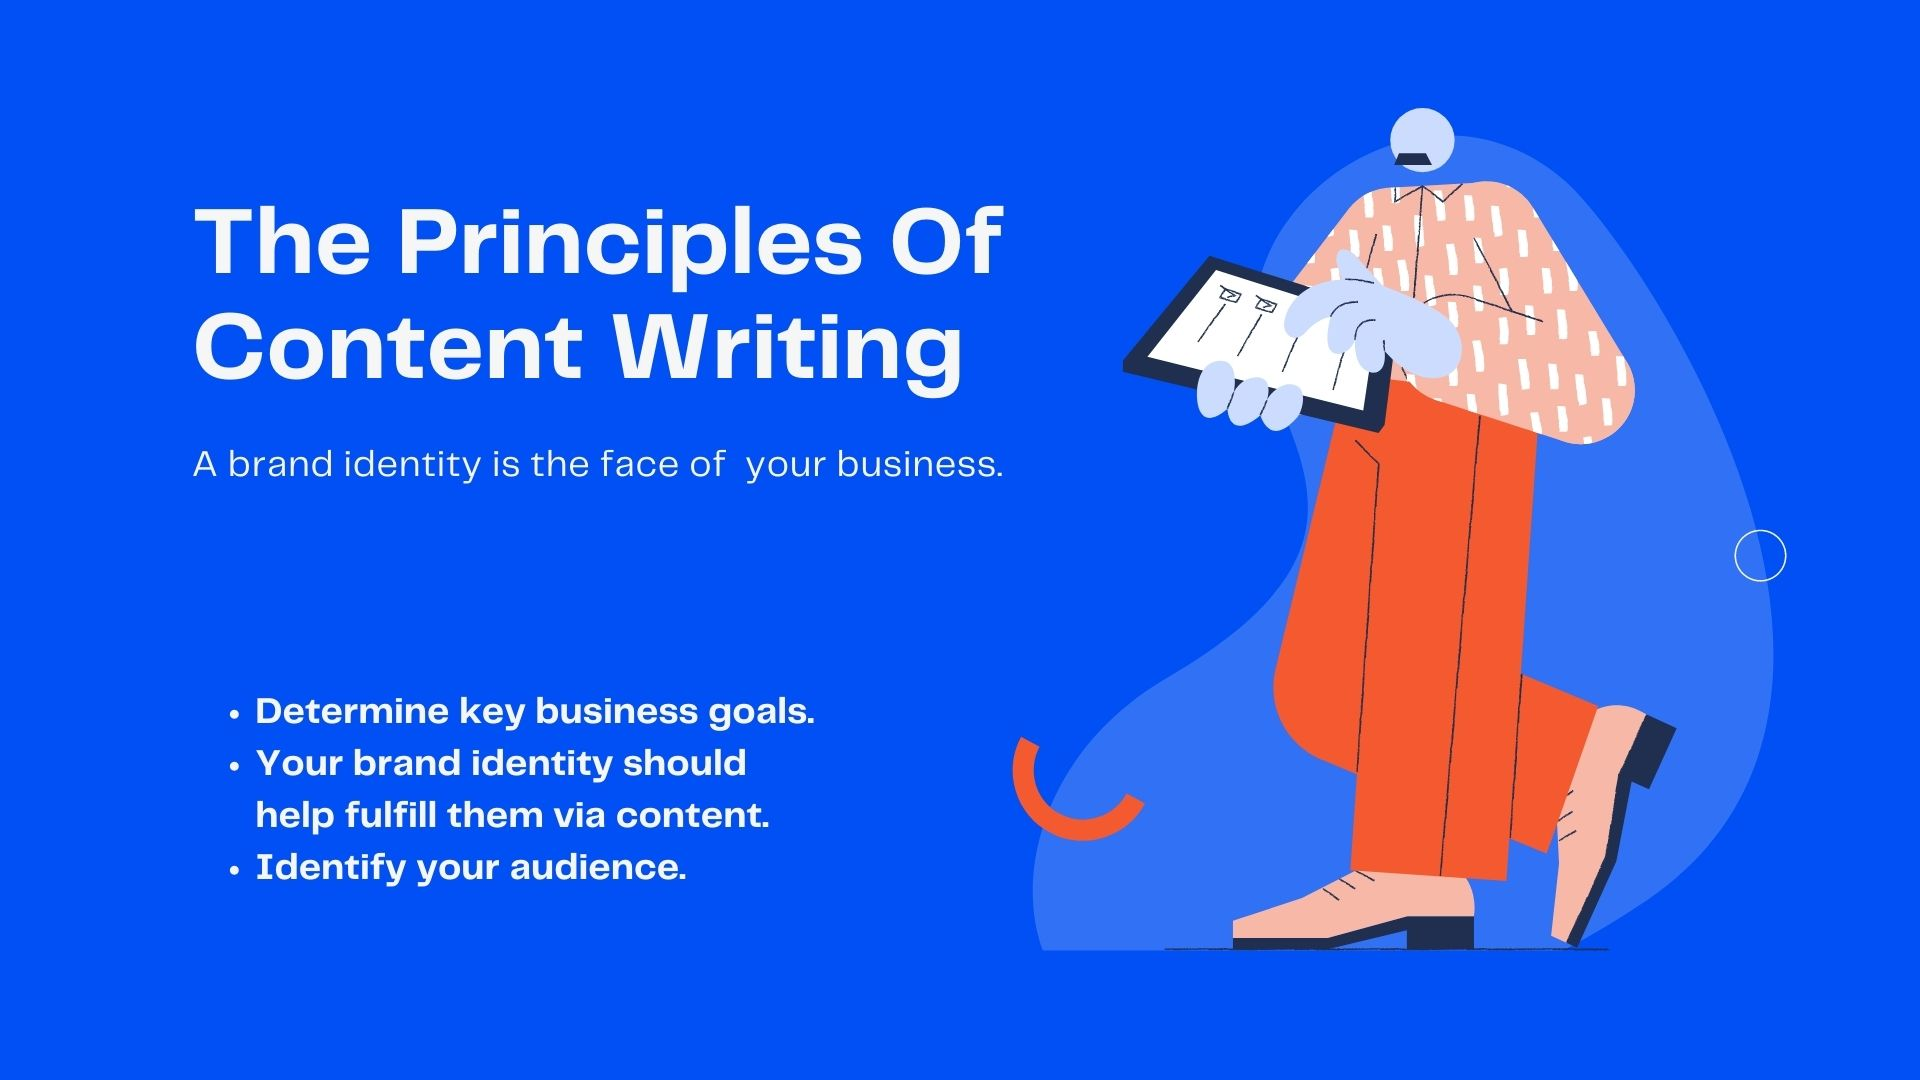 Principles of Content Writing